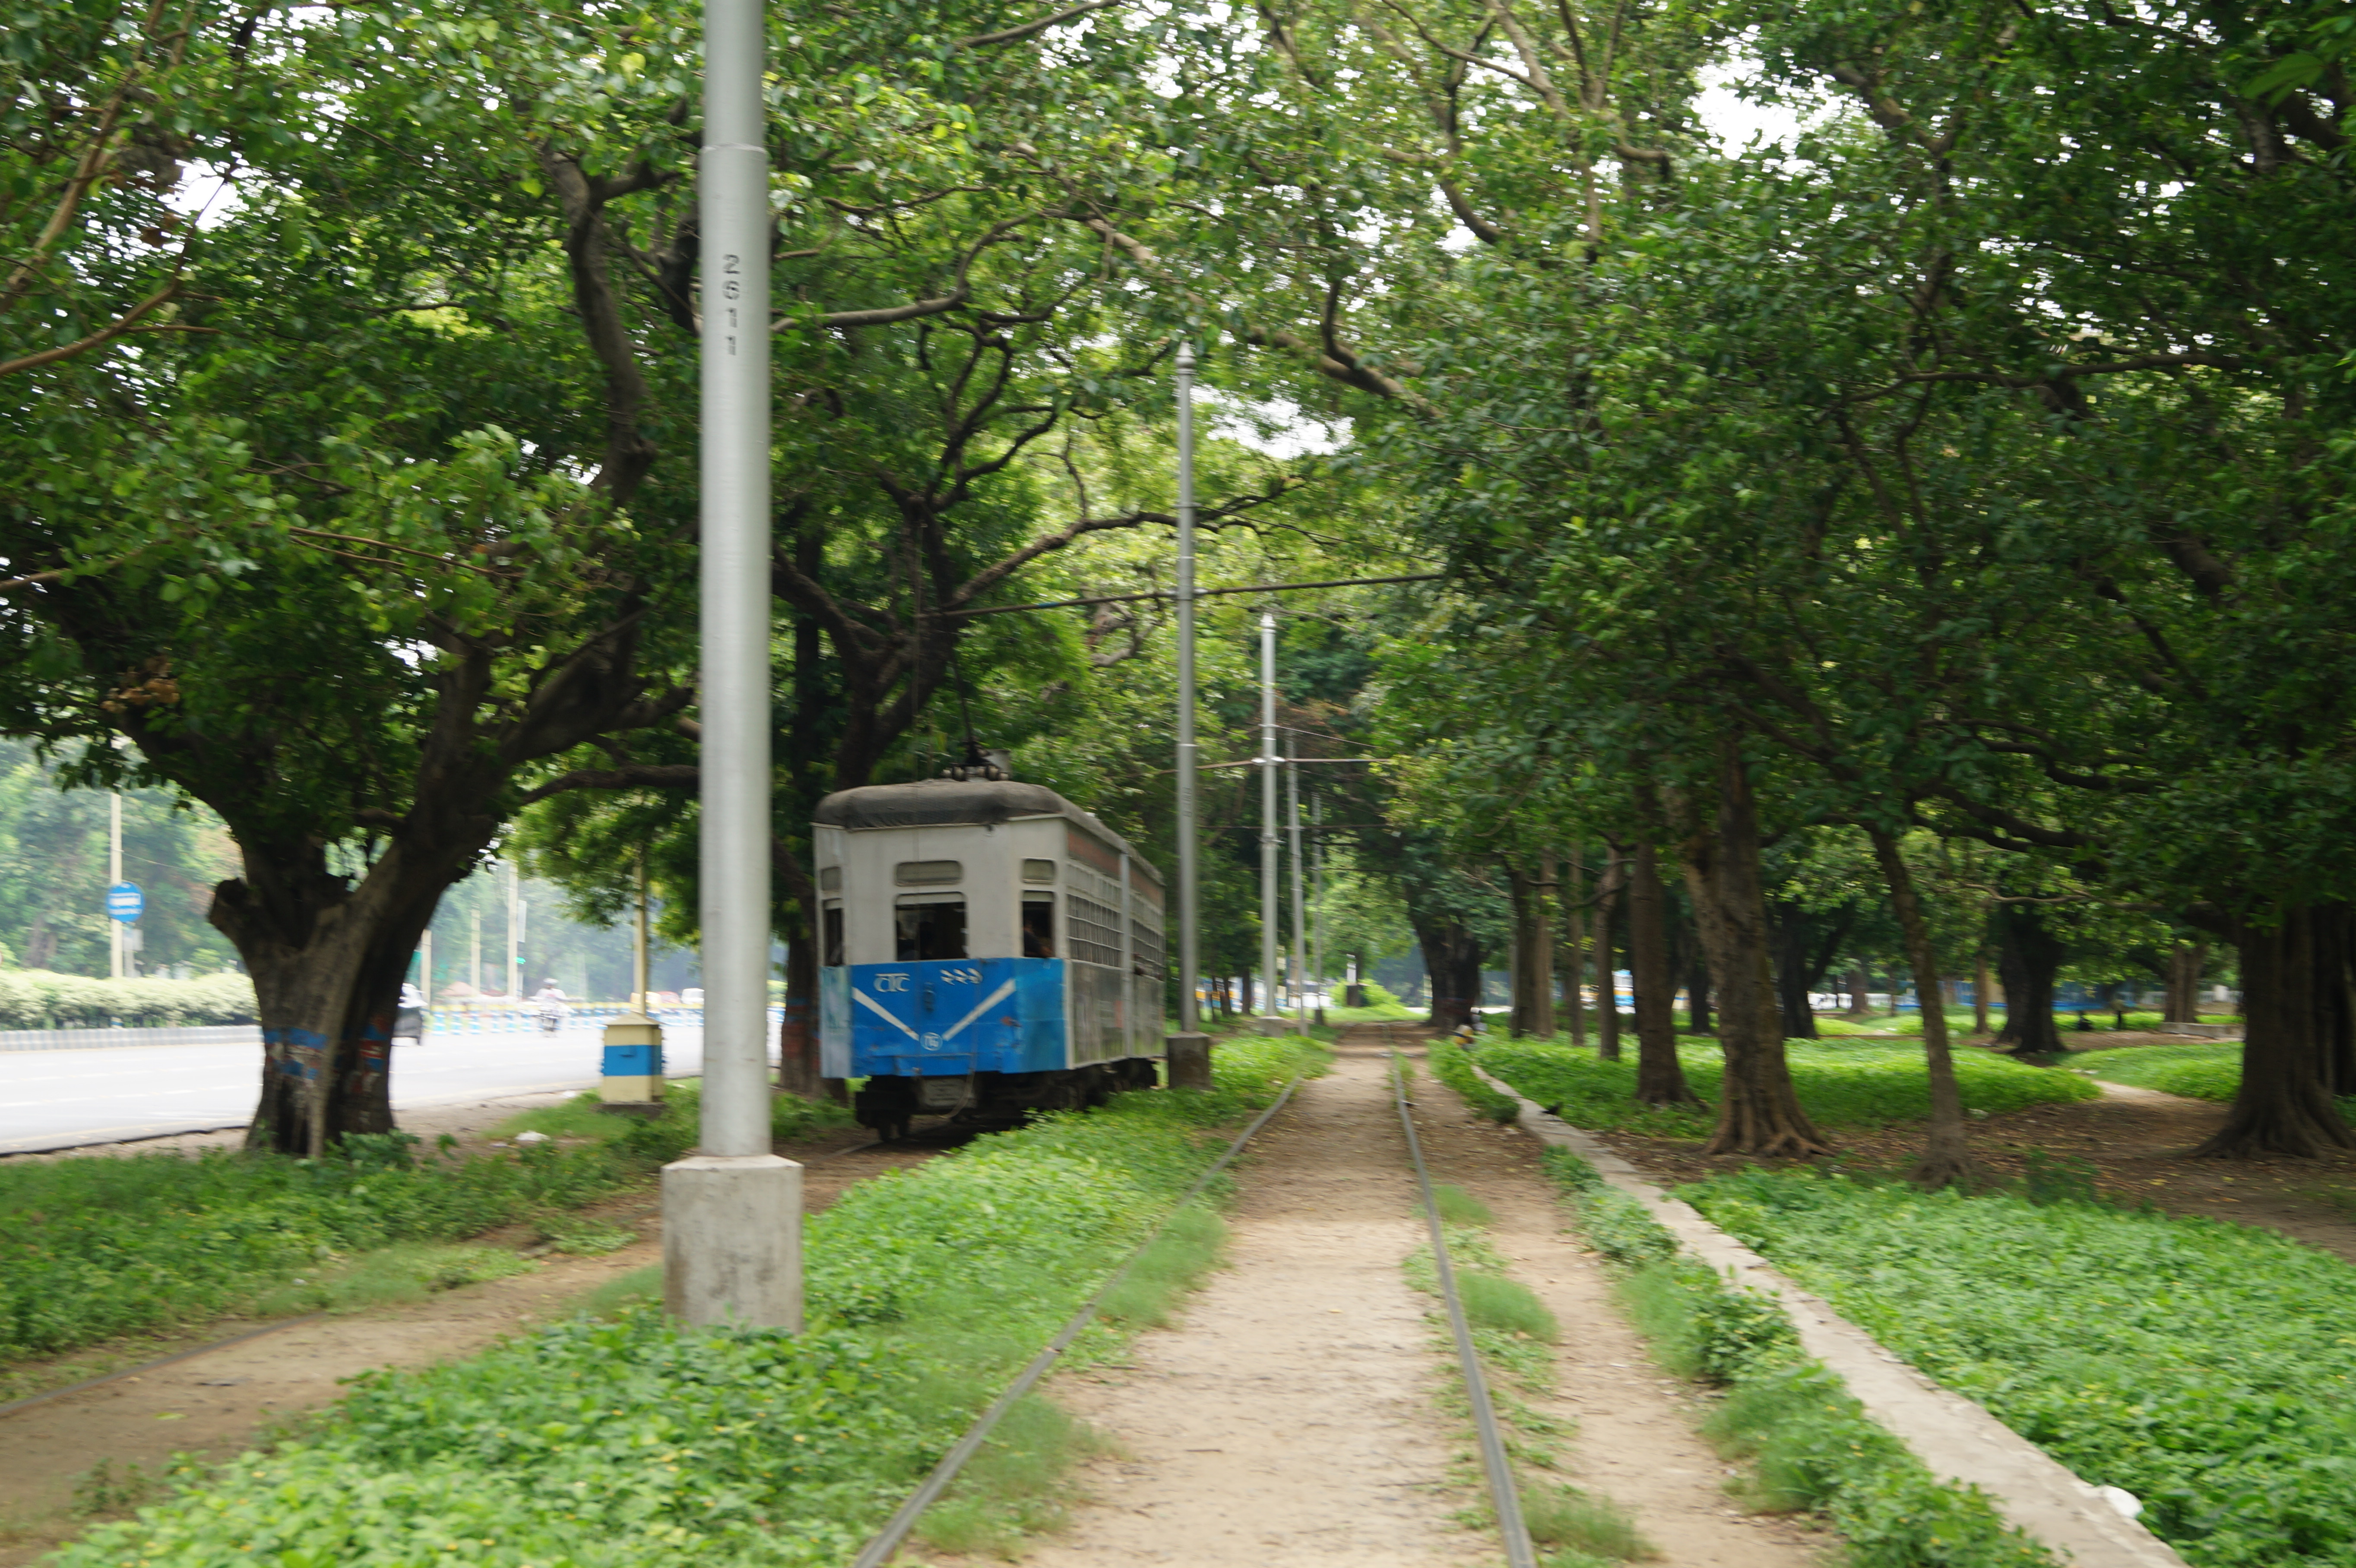 A tram chugs through the Maidan. Photo by Kasturi Basu